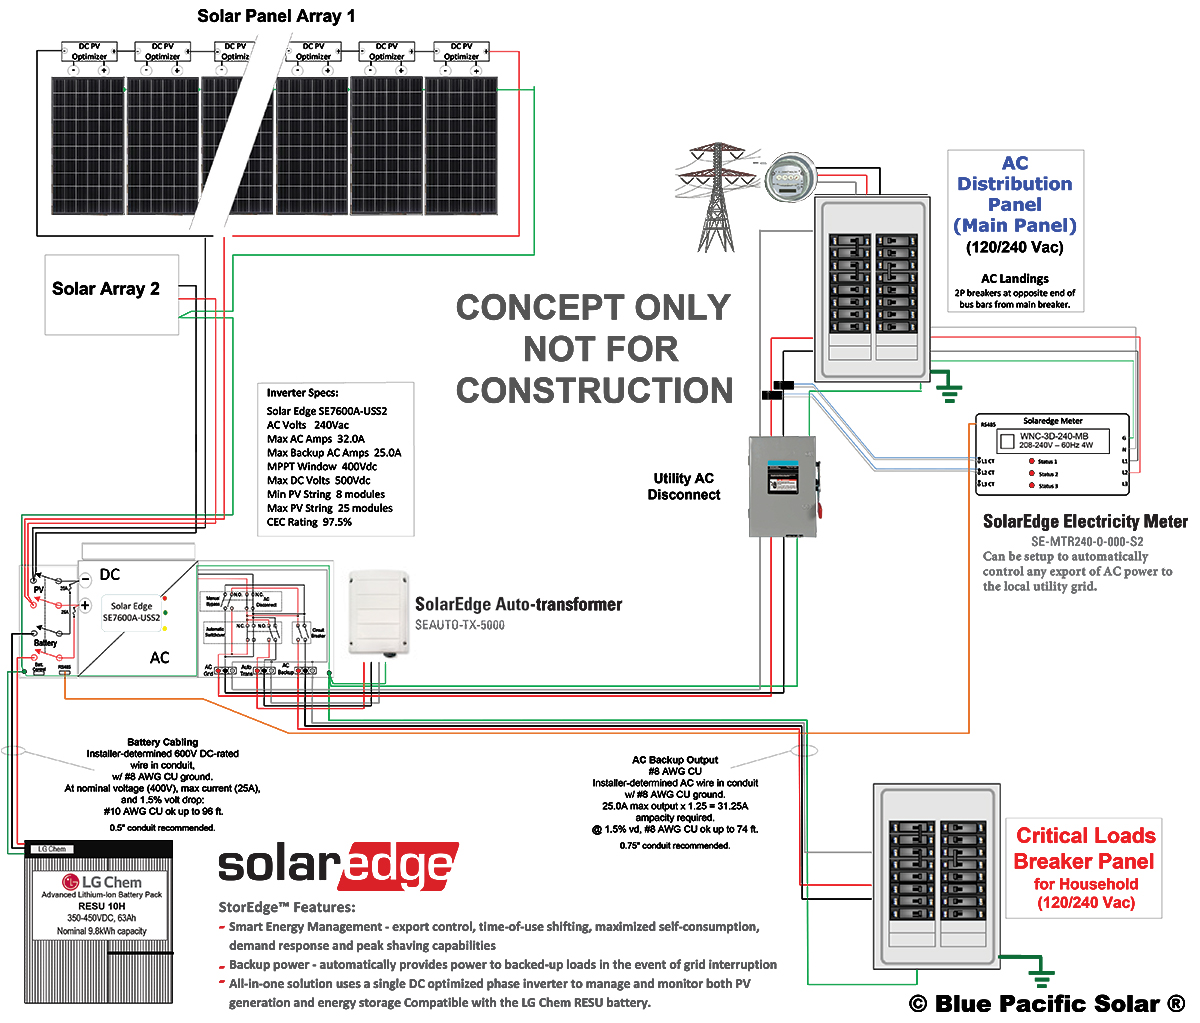 Conduit Wiring Diagram Solar - Wiring Diagram Box on solar wiring diagrams for homes, solar power panel diagram, solar panel installation diagram, solar panel schematic diagram, solar panel diode diagram, solar panel wiring diagrams pdf, home solar panel diagram, solar energy house diagram, solar panel inverter diagram, solar panel parts diagram, solar system schematic diagram, solar battery wiring diagrams, how does solar energy work diagram, solar panel kits, solar panel components diagram, deck wiring diagram, solar panel system batteries, photovoltaic wiring diagram, simple solar panel diagram, solar panel parallel wiring vs series,